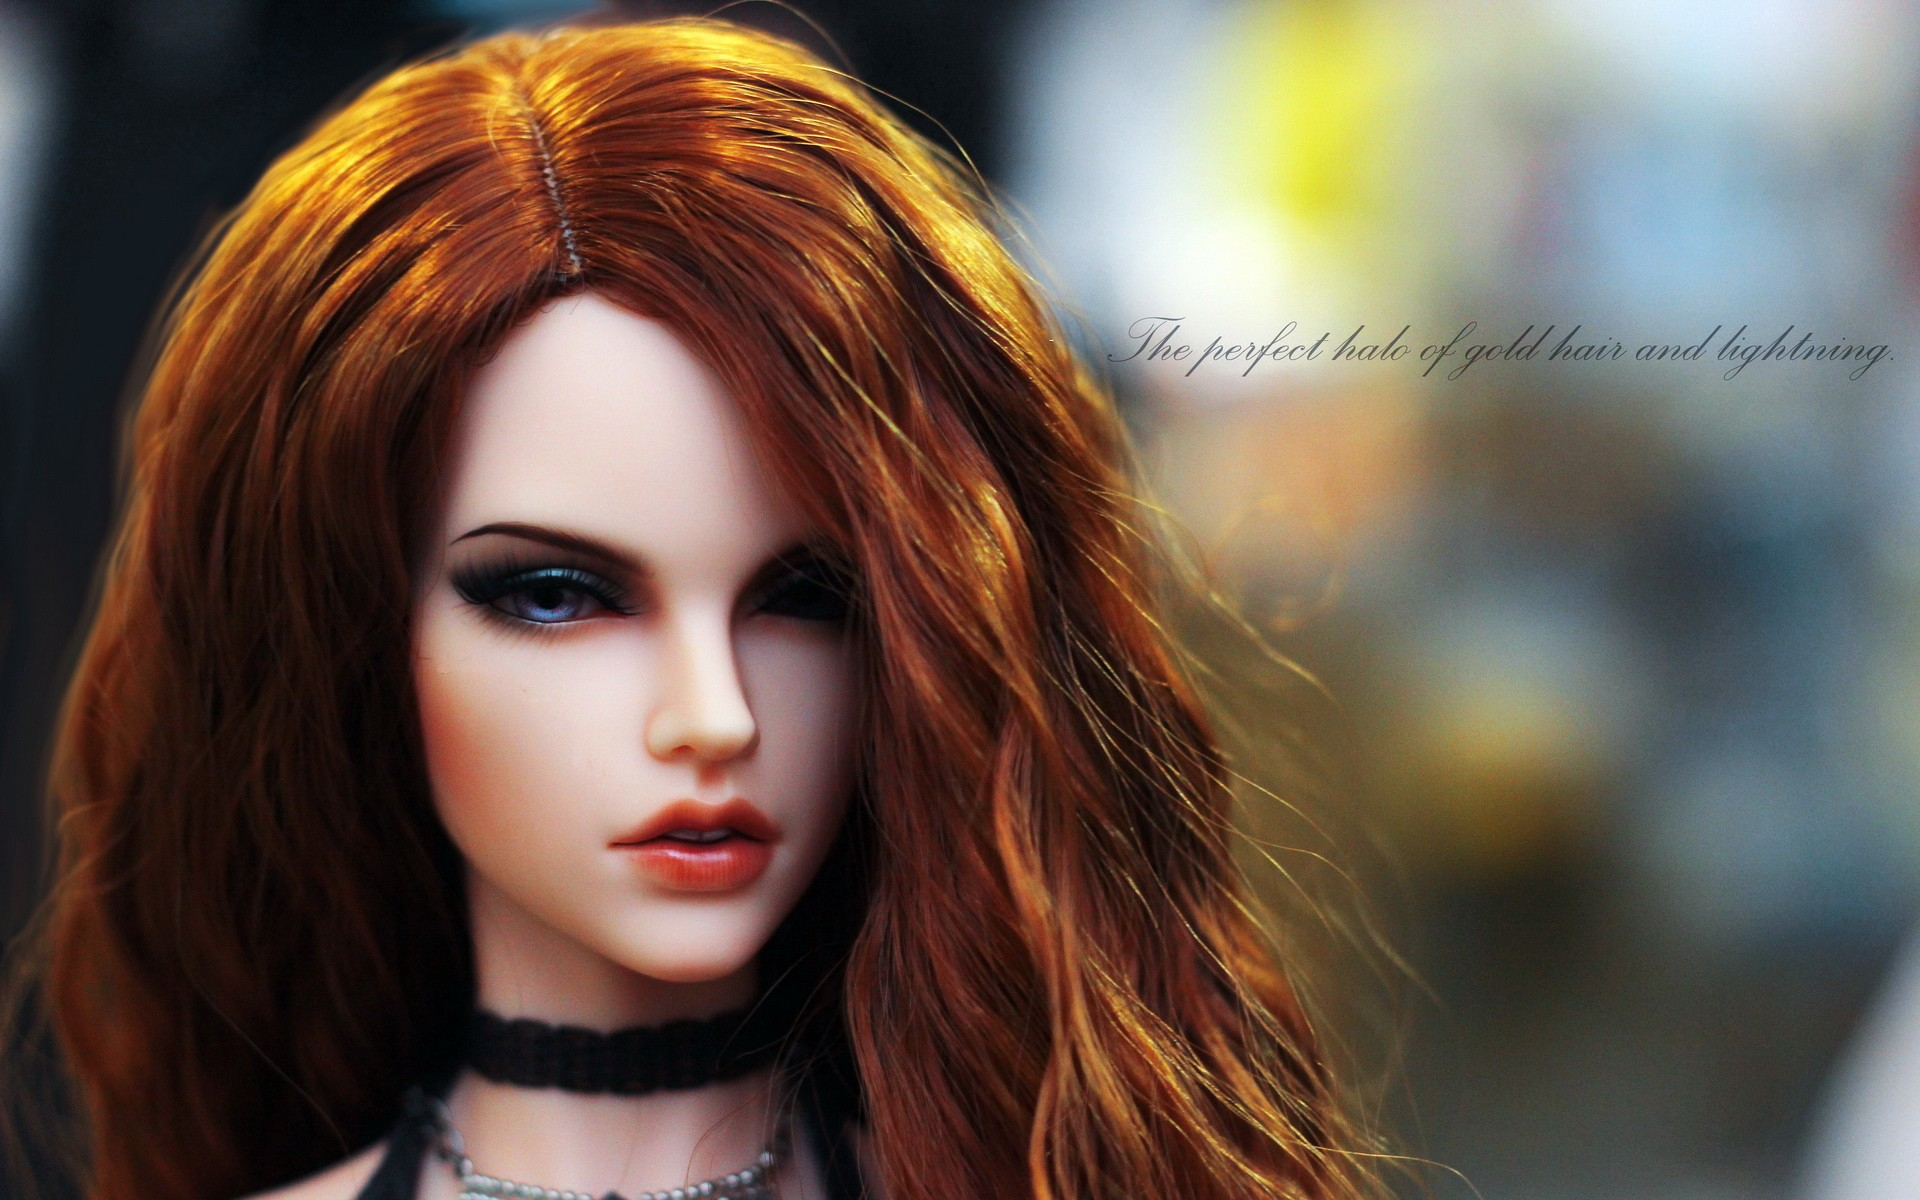 Doll hd wallpaper background image 1920x1200 id - Barbie doll wallpaper free download ...